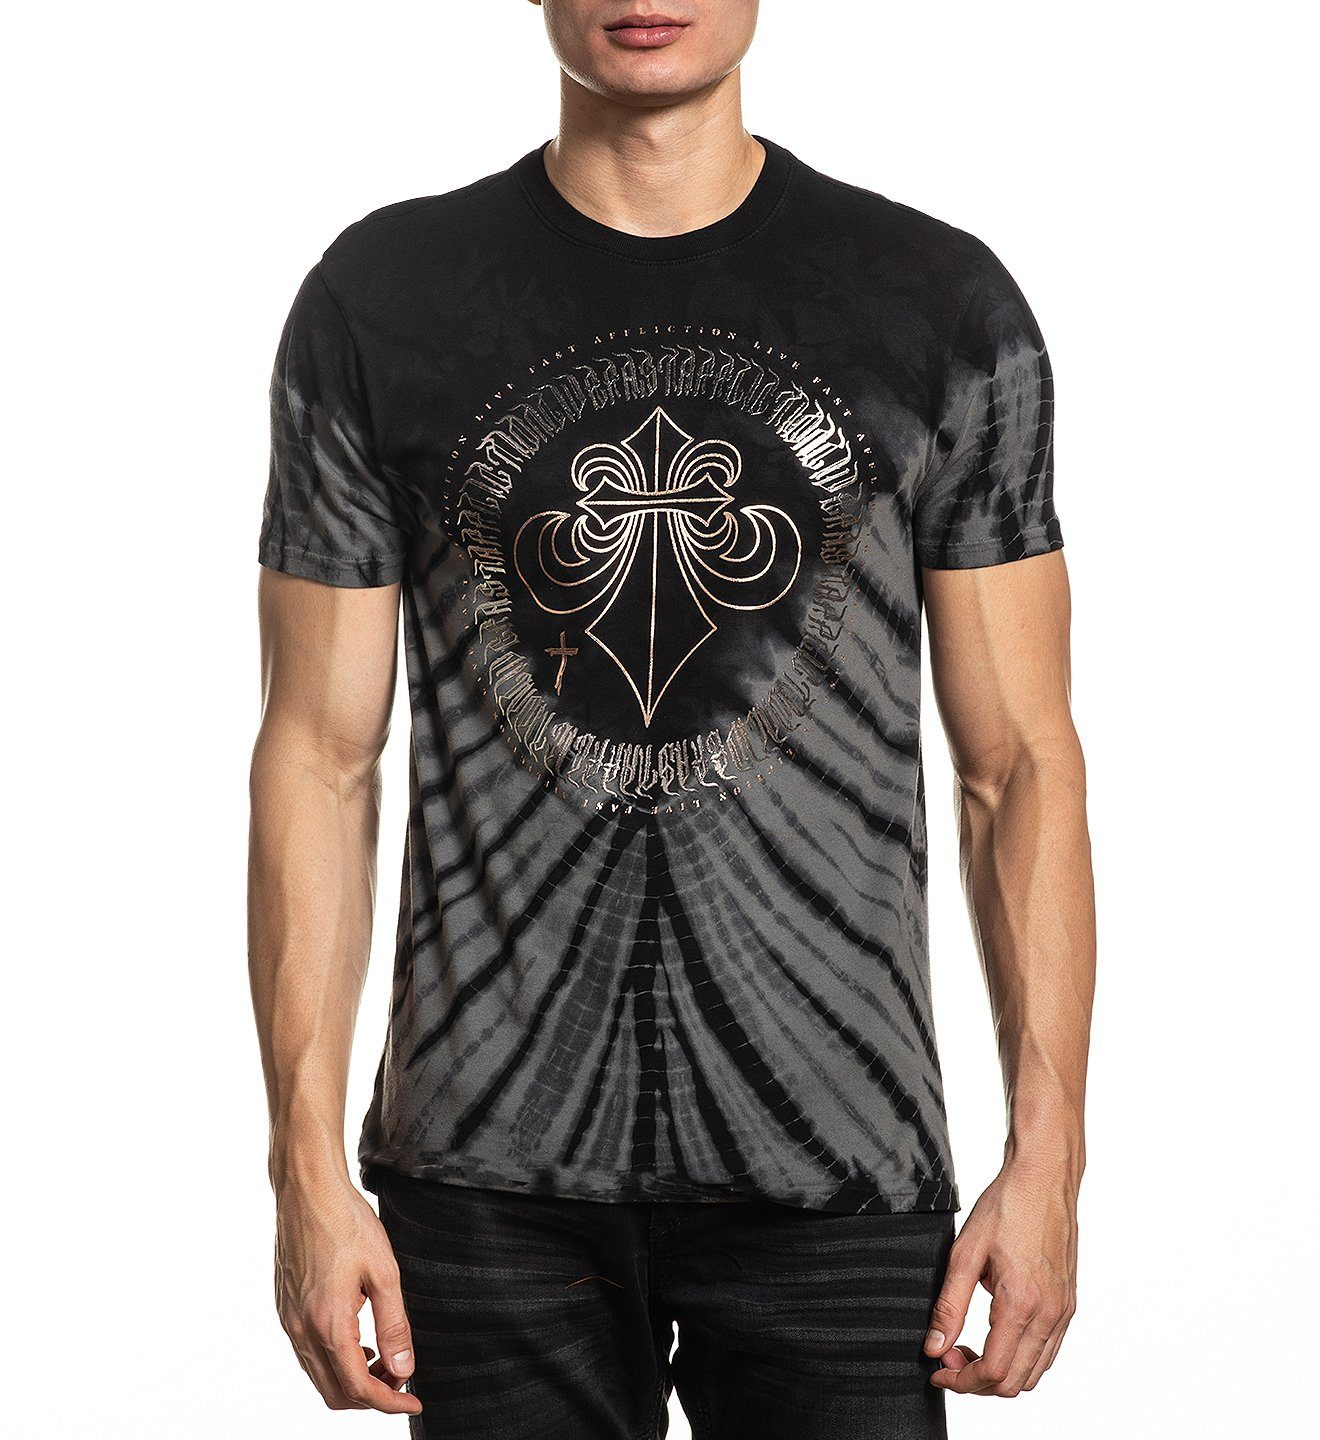 Mavi - Mens Short Sleeve Tees - Affliction Clothing